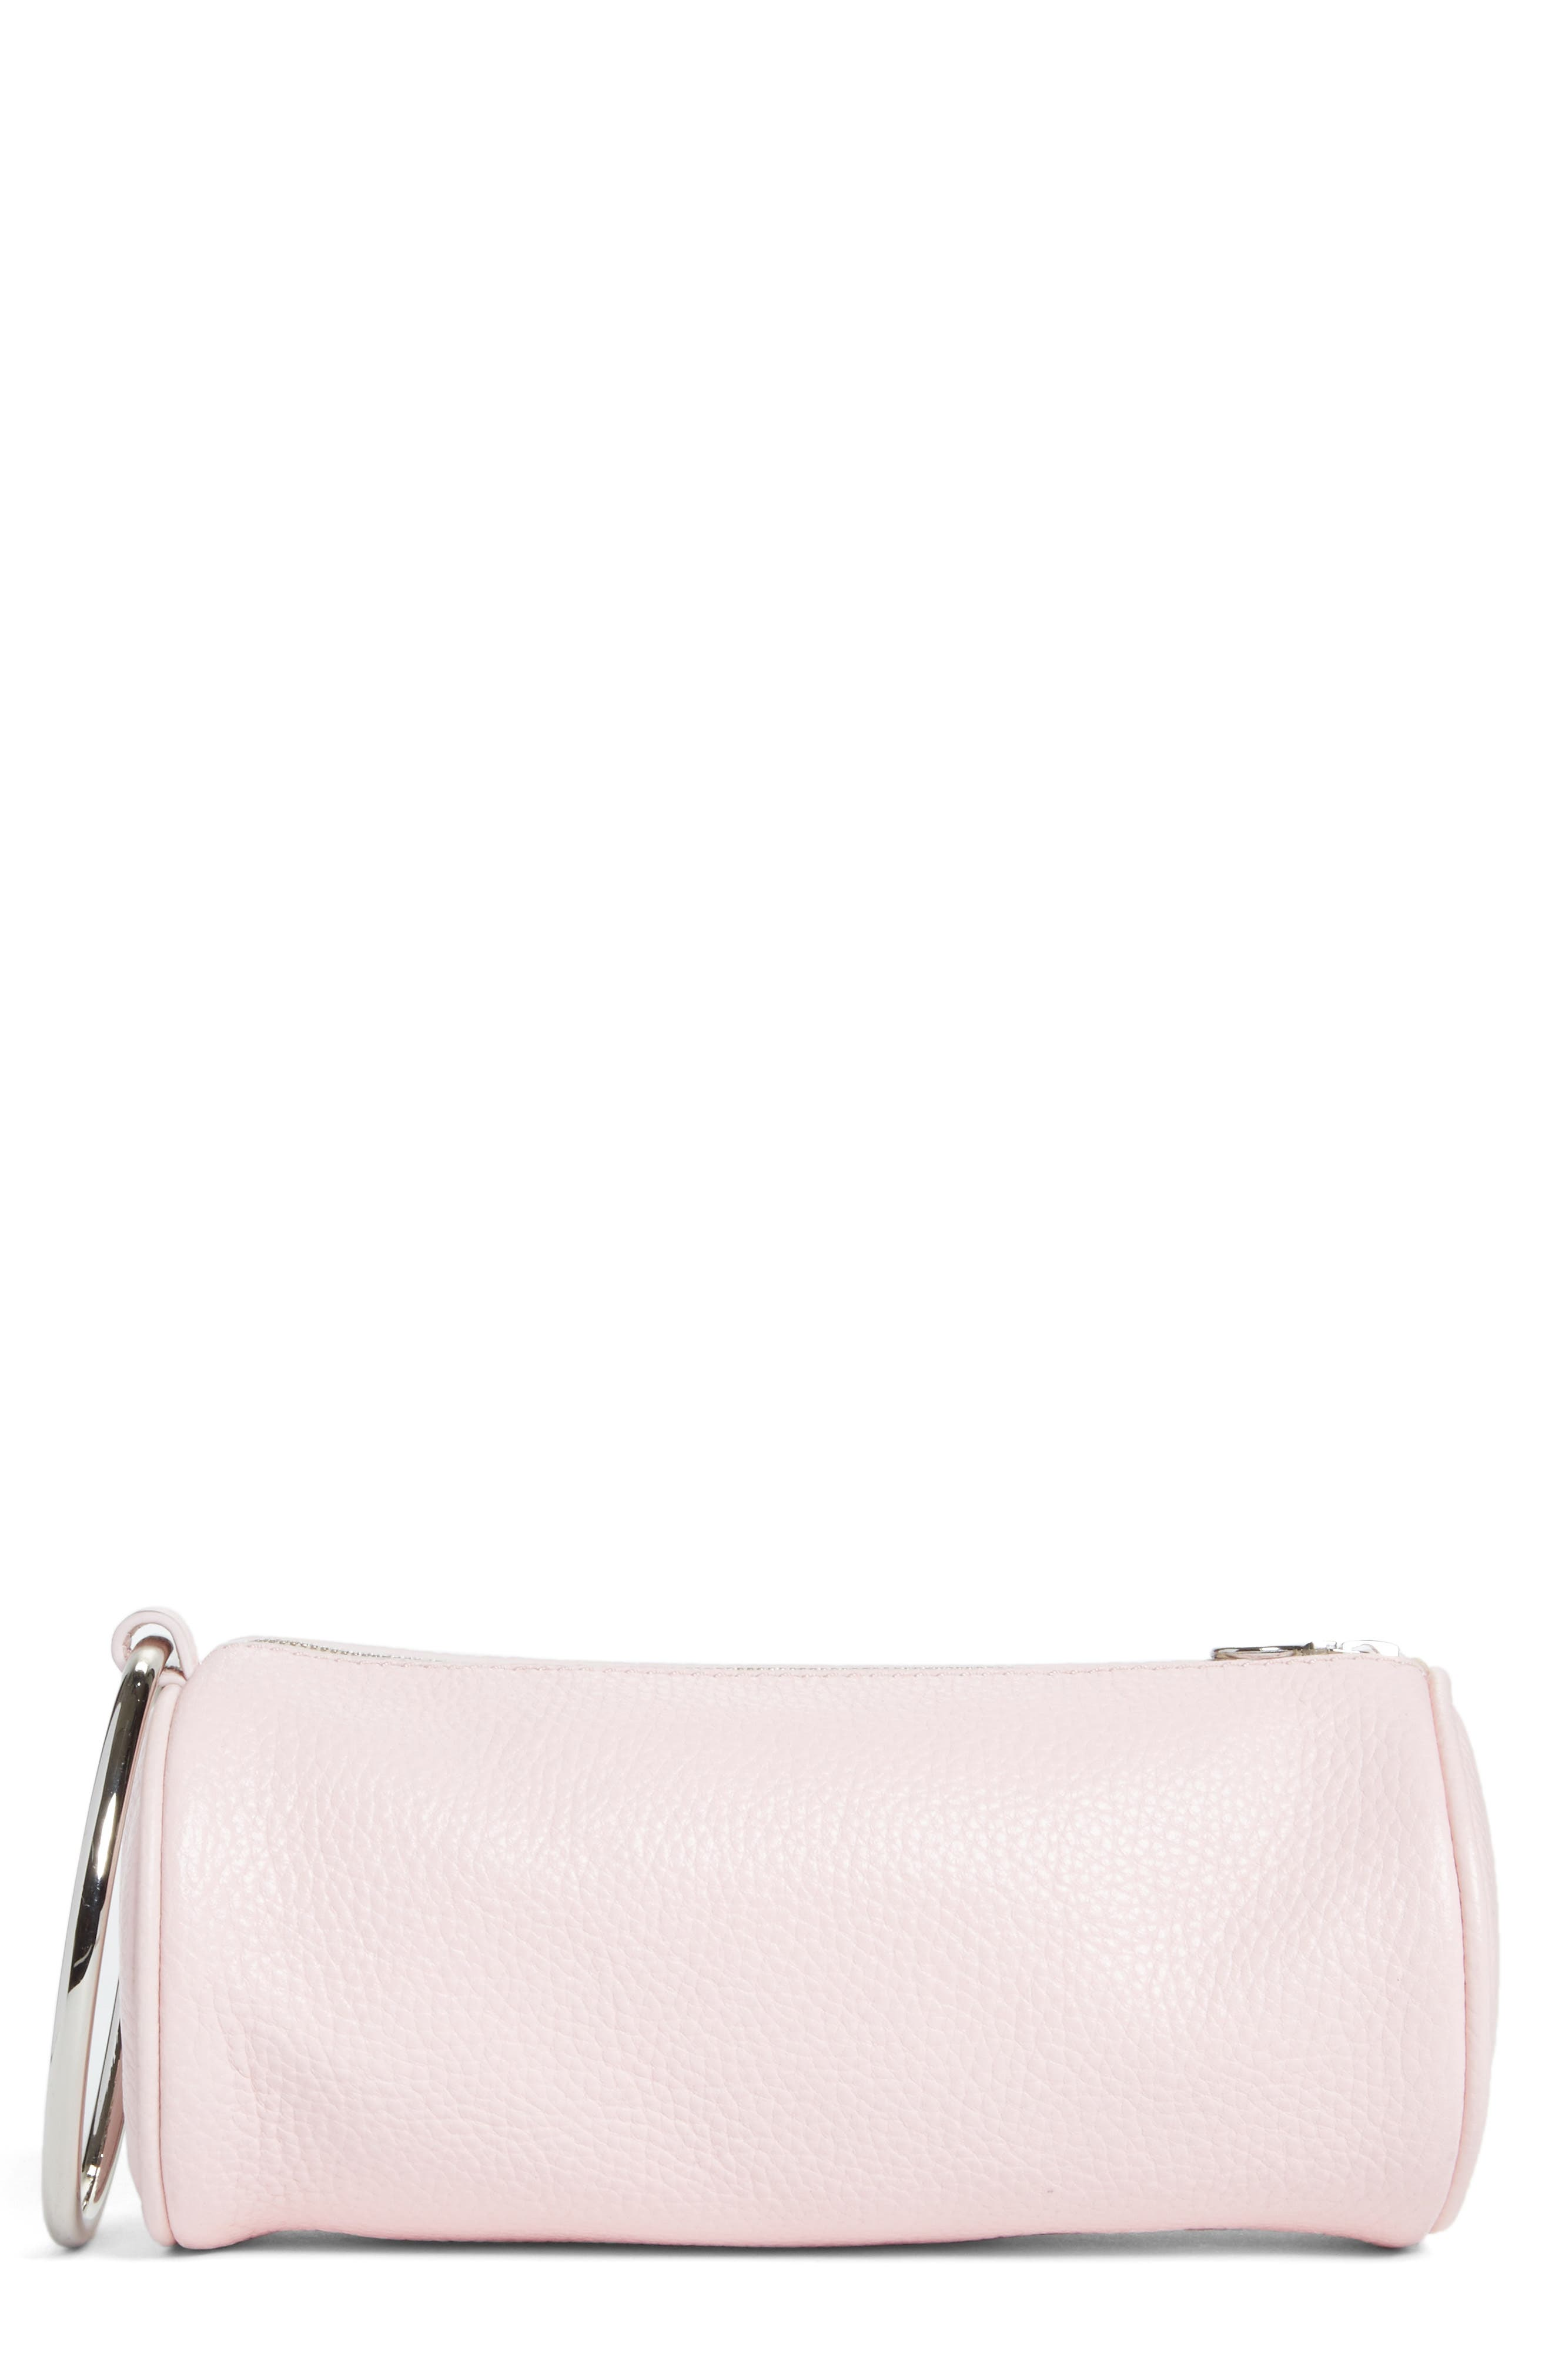 Pebbled Leather Duffel Wristlet Clutch,                             Main thumbnail 1, color,                             Blush Pink